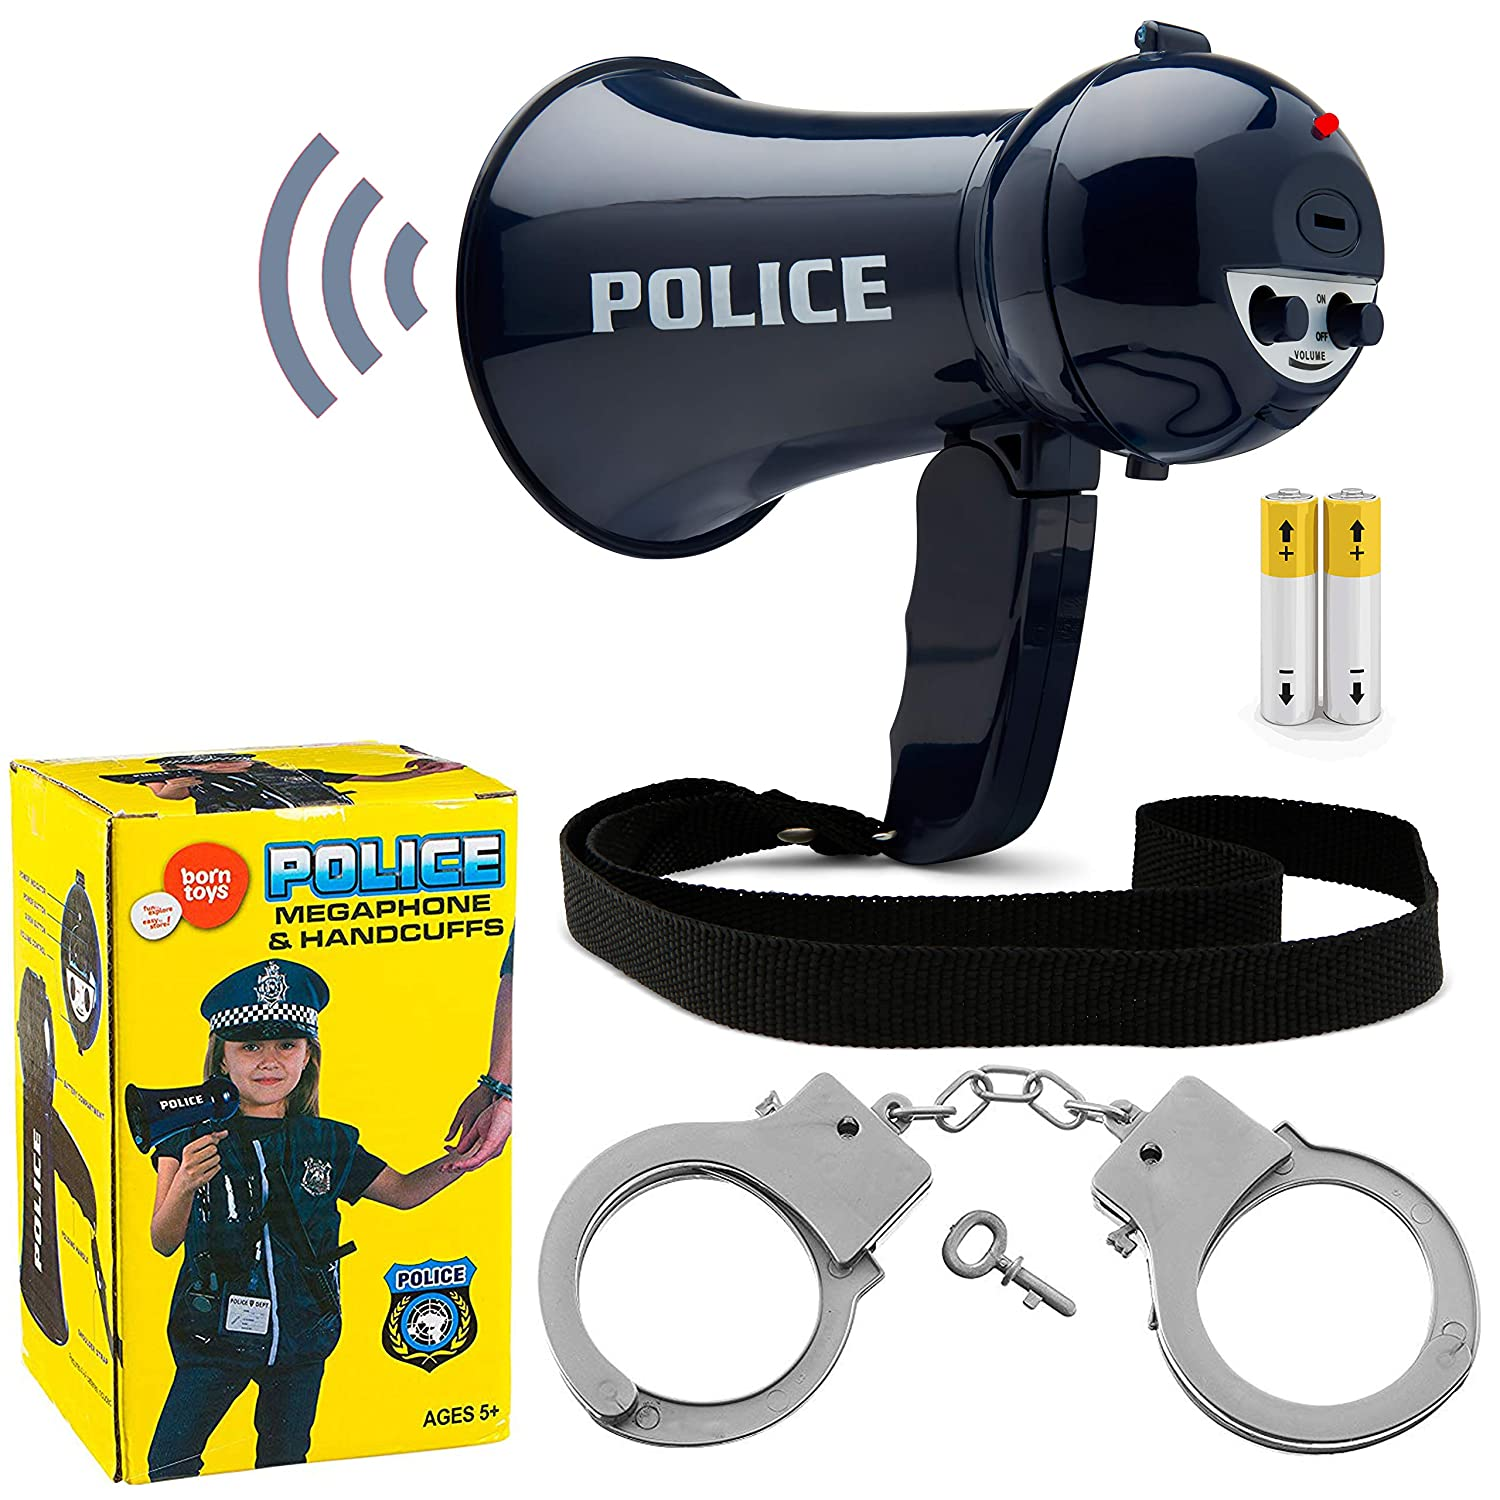 Born Toys Police Megaphone and Handcuffs by (Batteries Included)